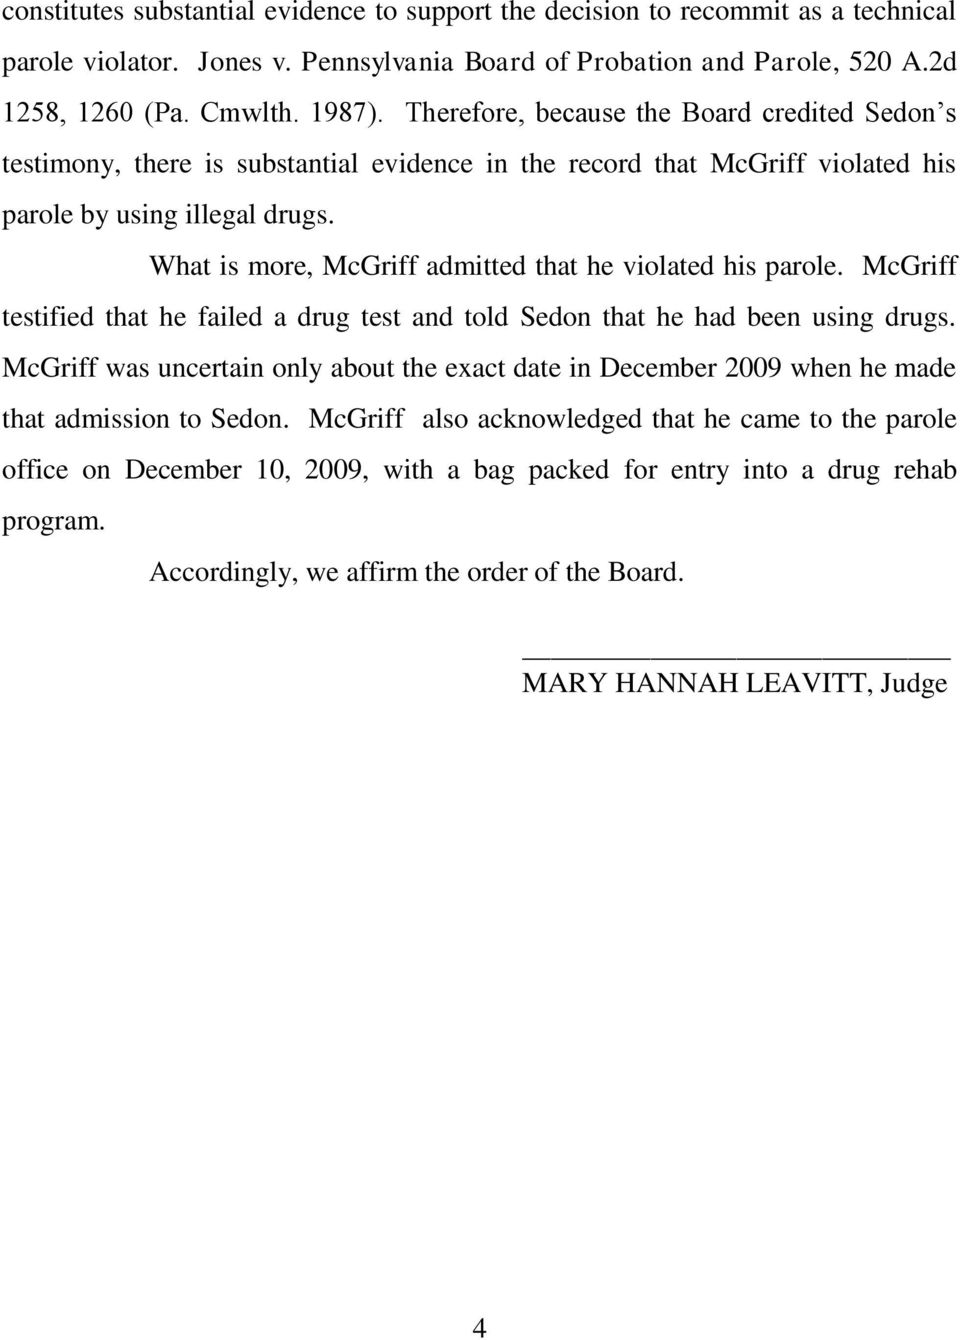 What is more, McGriff admitted that he violated his parole. McGriff testified that he failed a drug test and told Sedon that he had been using drugs.